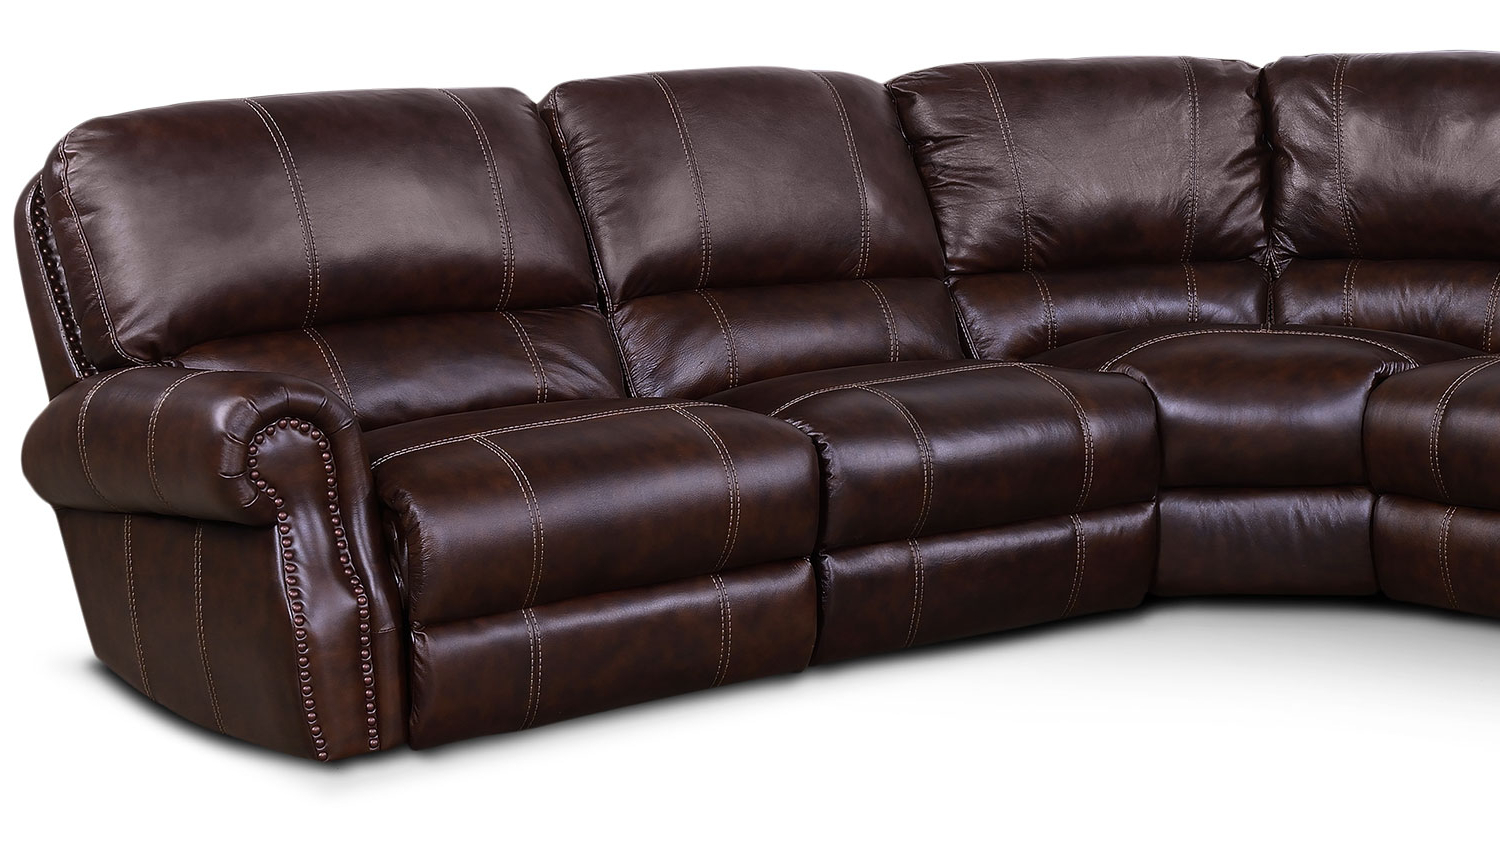 Dartmouth 6 Piece Power Reclining Sectional With 2 Reclining Seats Intended For Newest Norfolk Chocolate 3 Piece Sectionals With Raf Chaise (Gallery 18 of 20)